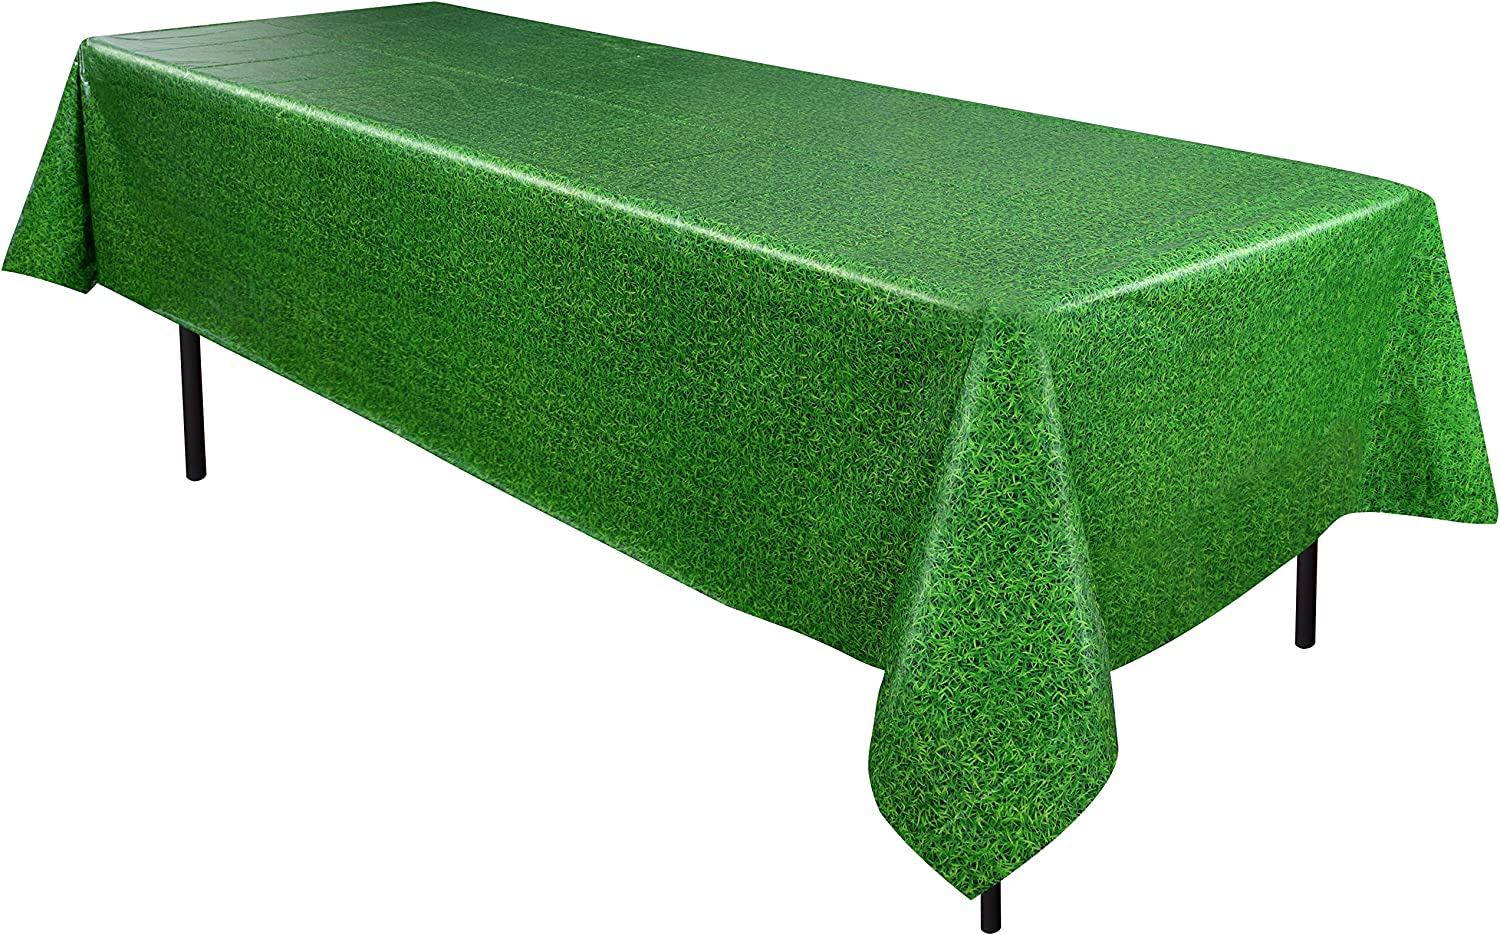 Kangaroo Grass Tablecover, Football Party Decorations Perfect For Super Bowl Themed Party (1/Pkg)